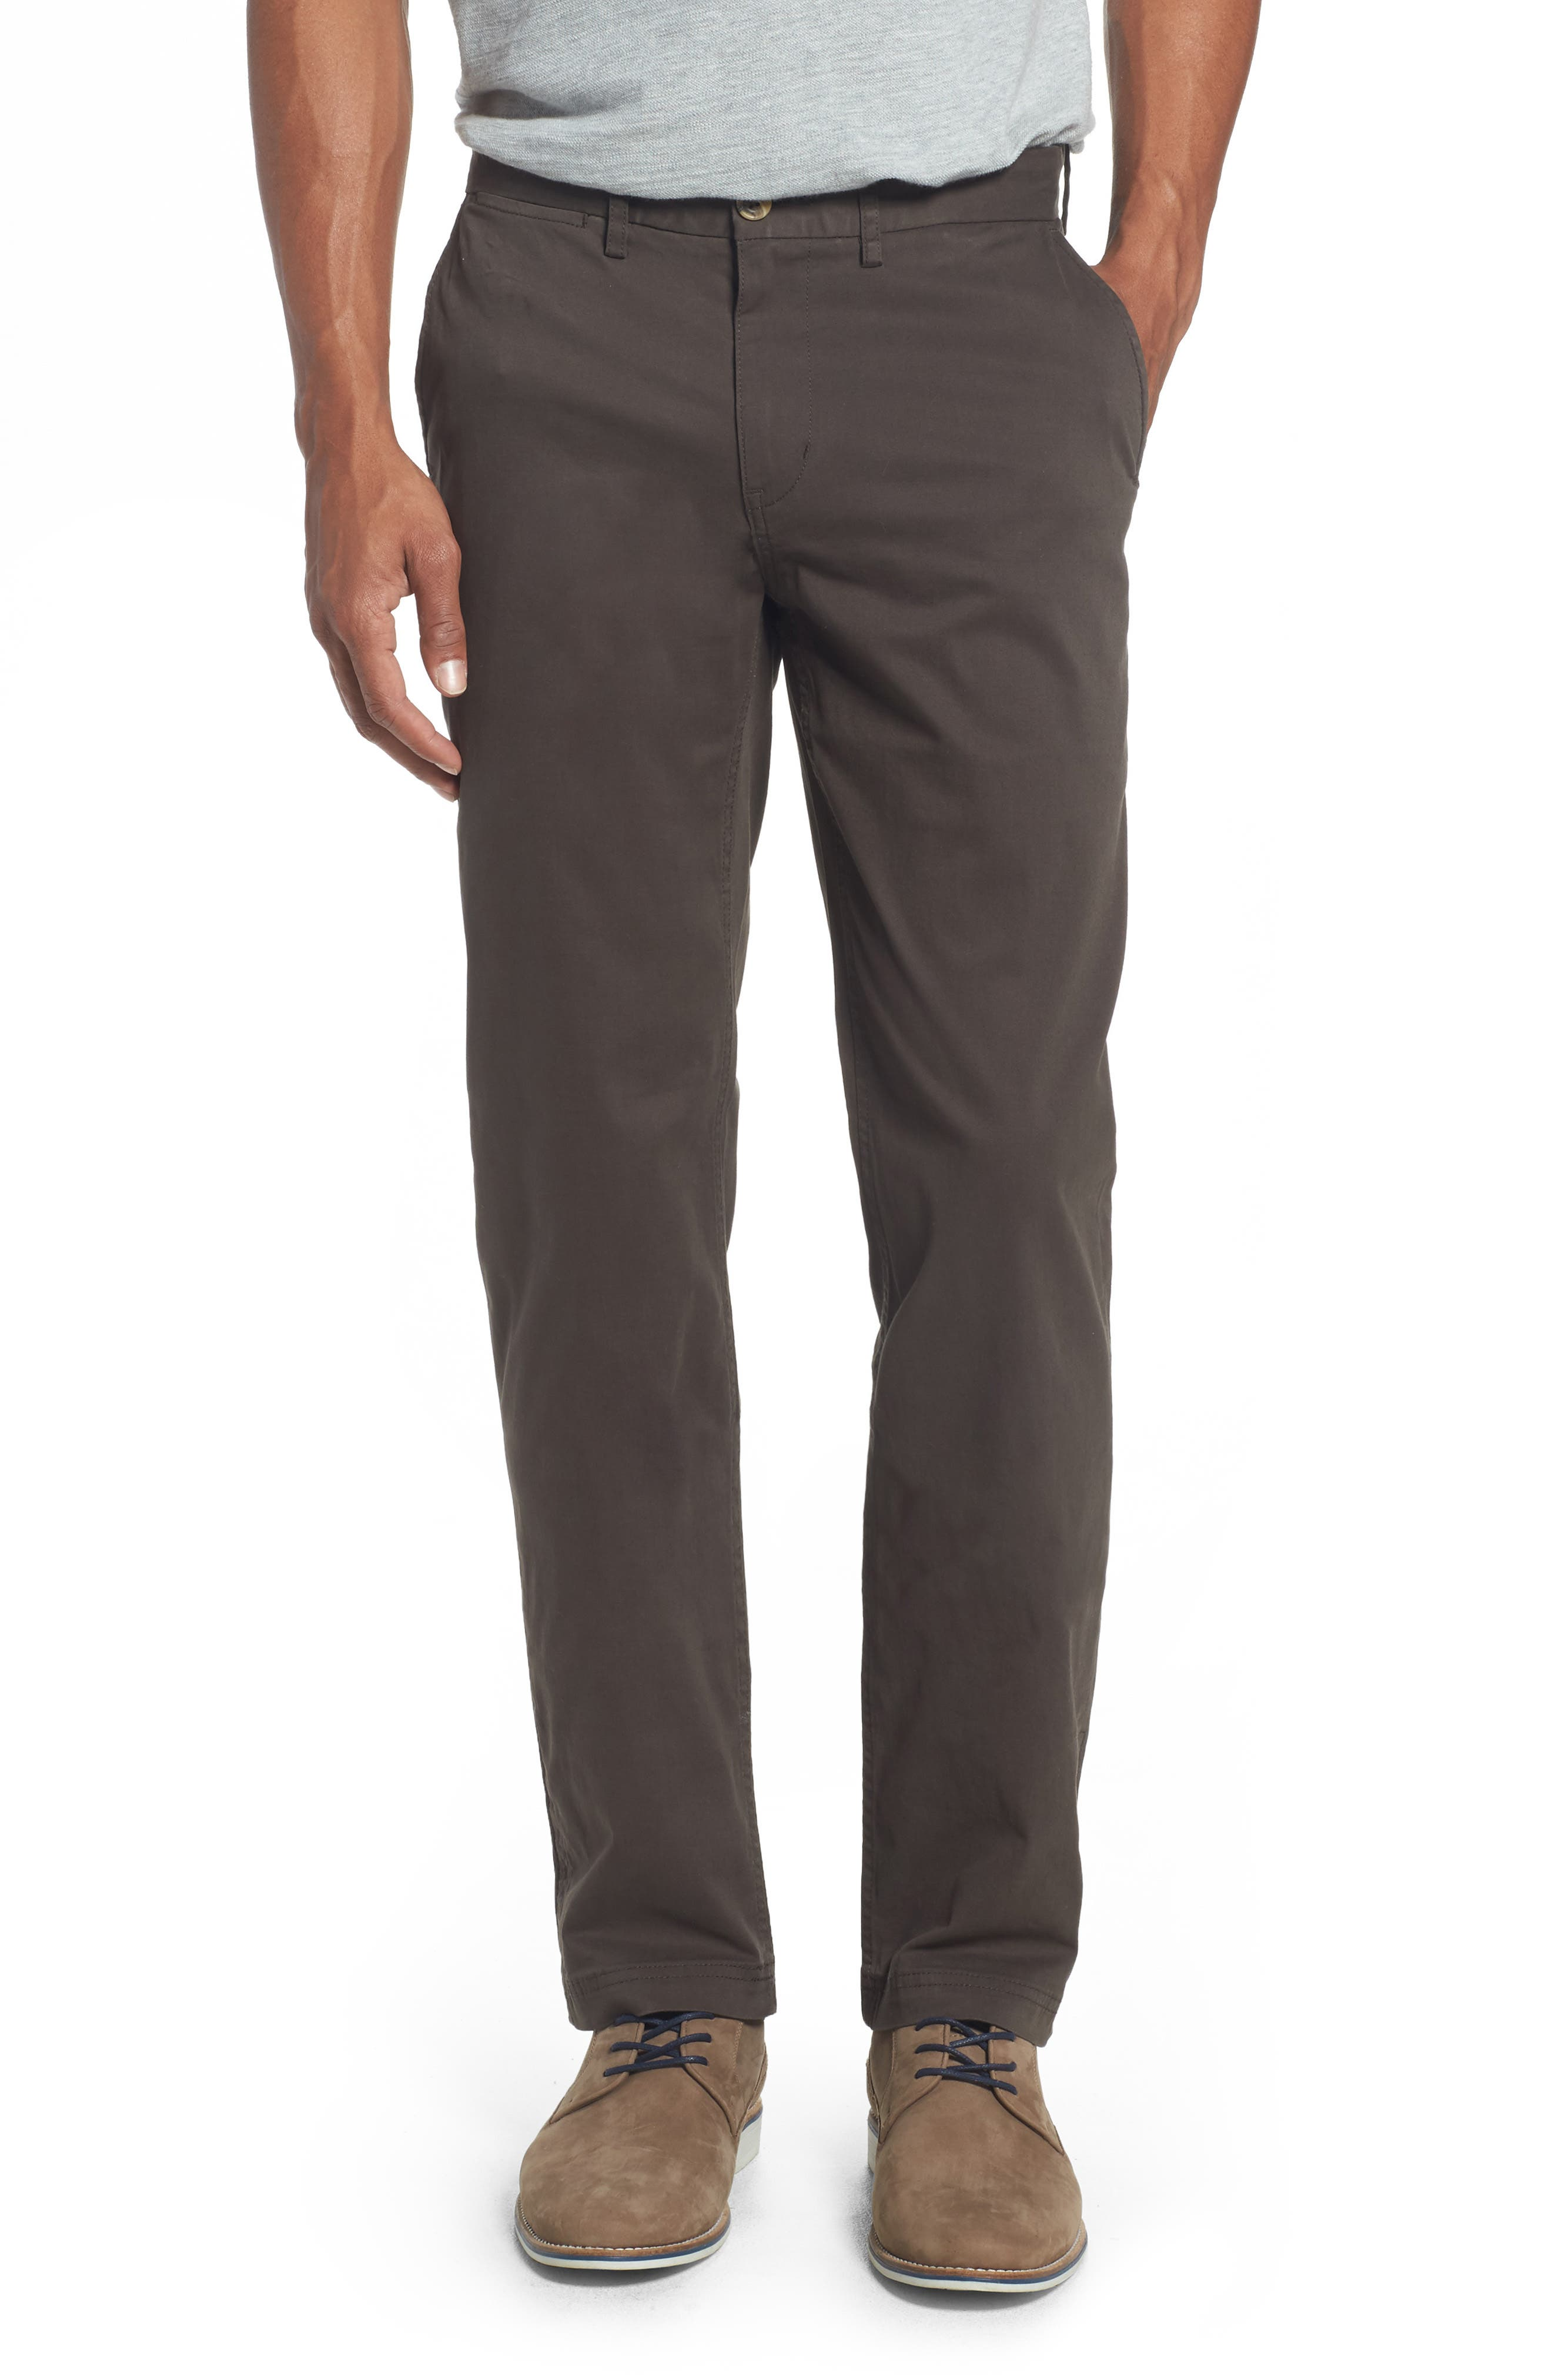 Alternate Image 1 Selected - Ben Sherman Slim Fit Stretch Chinos